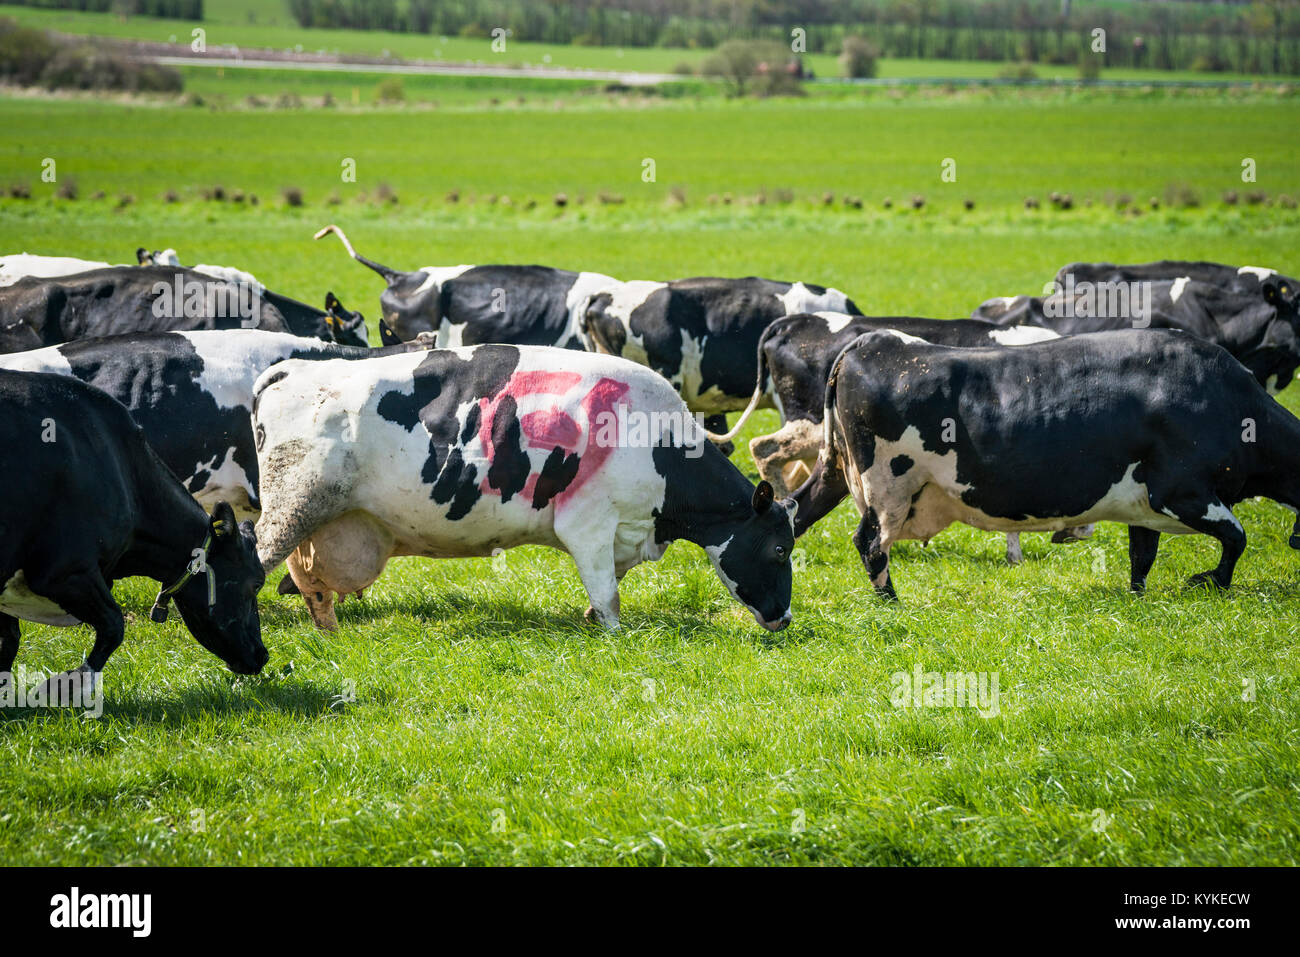 Cow with the danish ecology quality stamp grazing on a green field in the spring - Stock Image